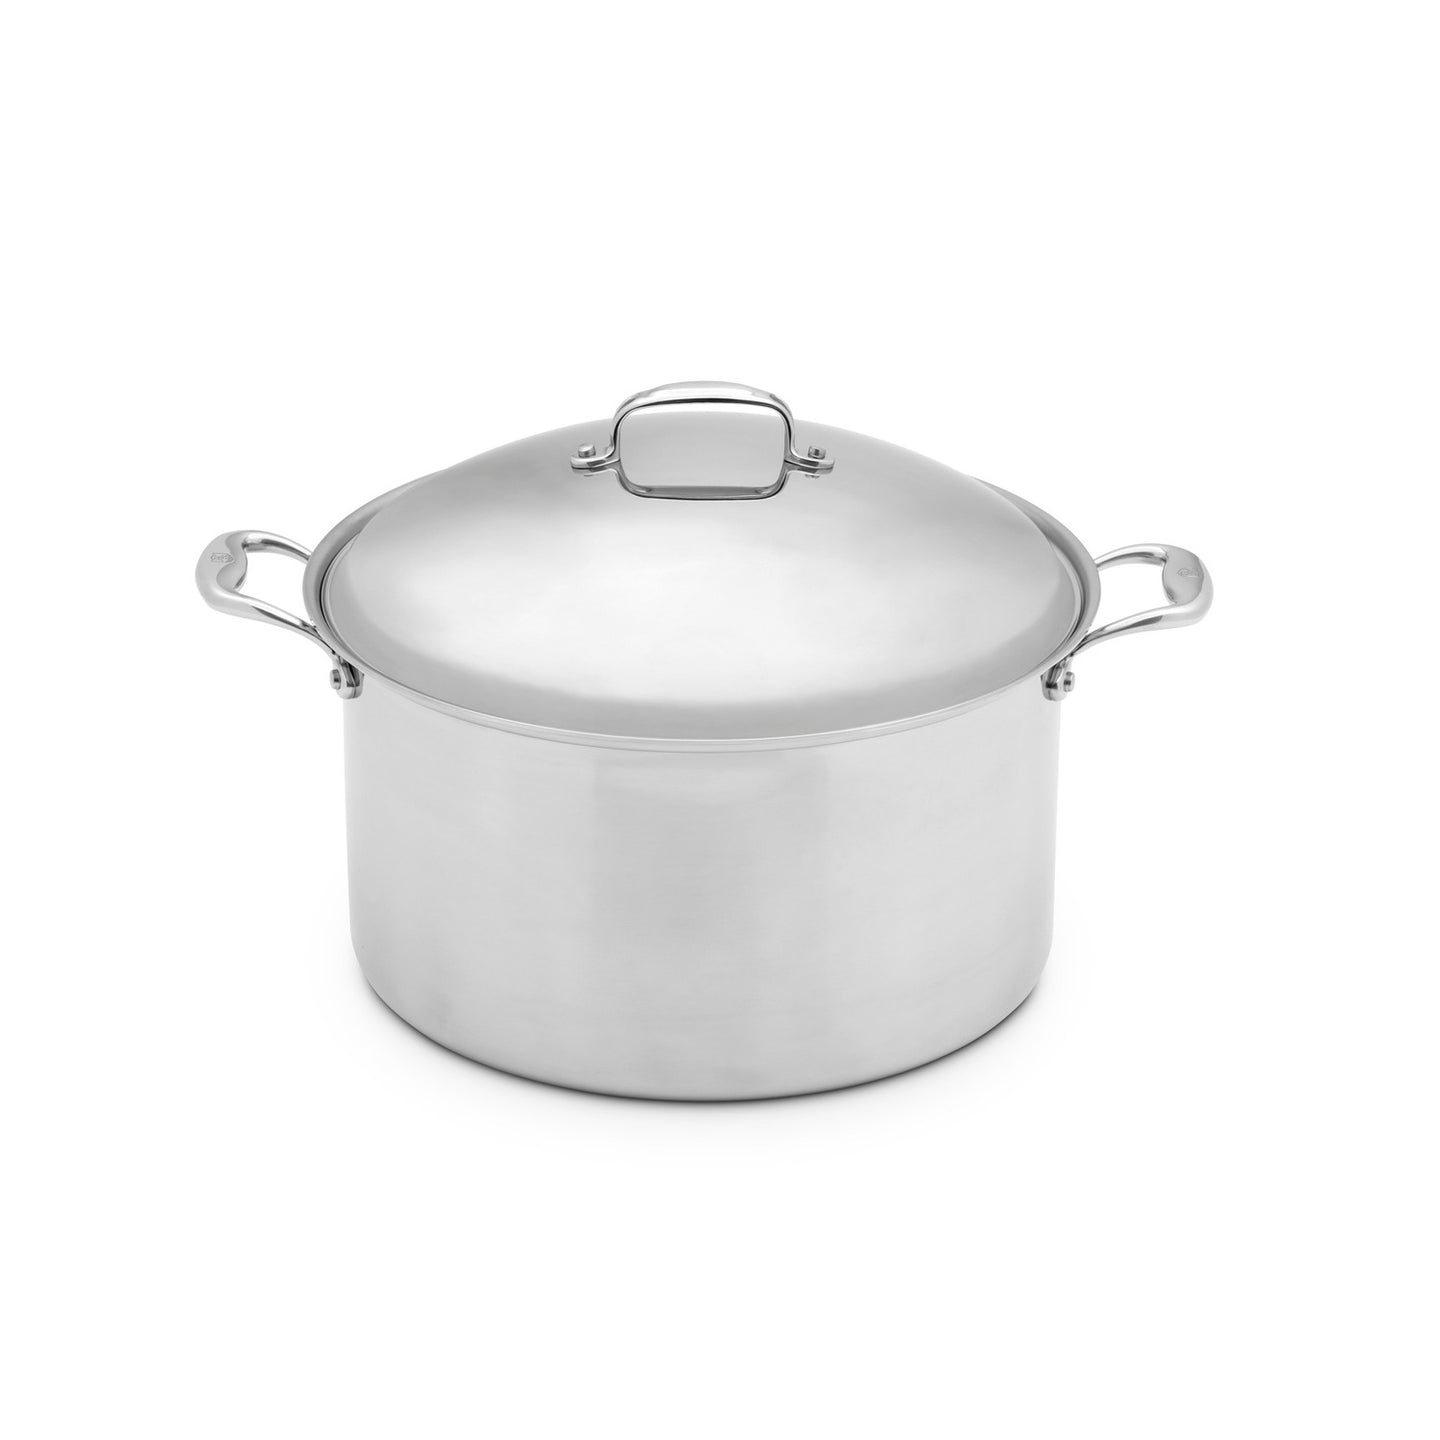 16 Quart Stock Pot with Lid - Factory Second